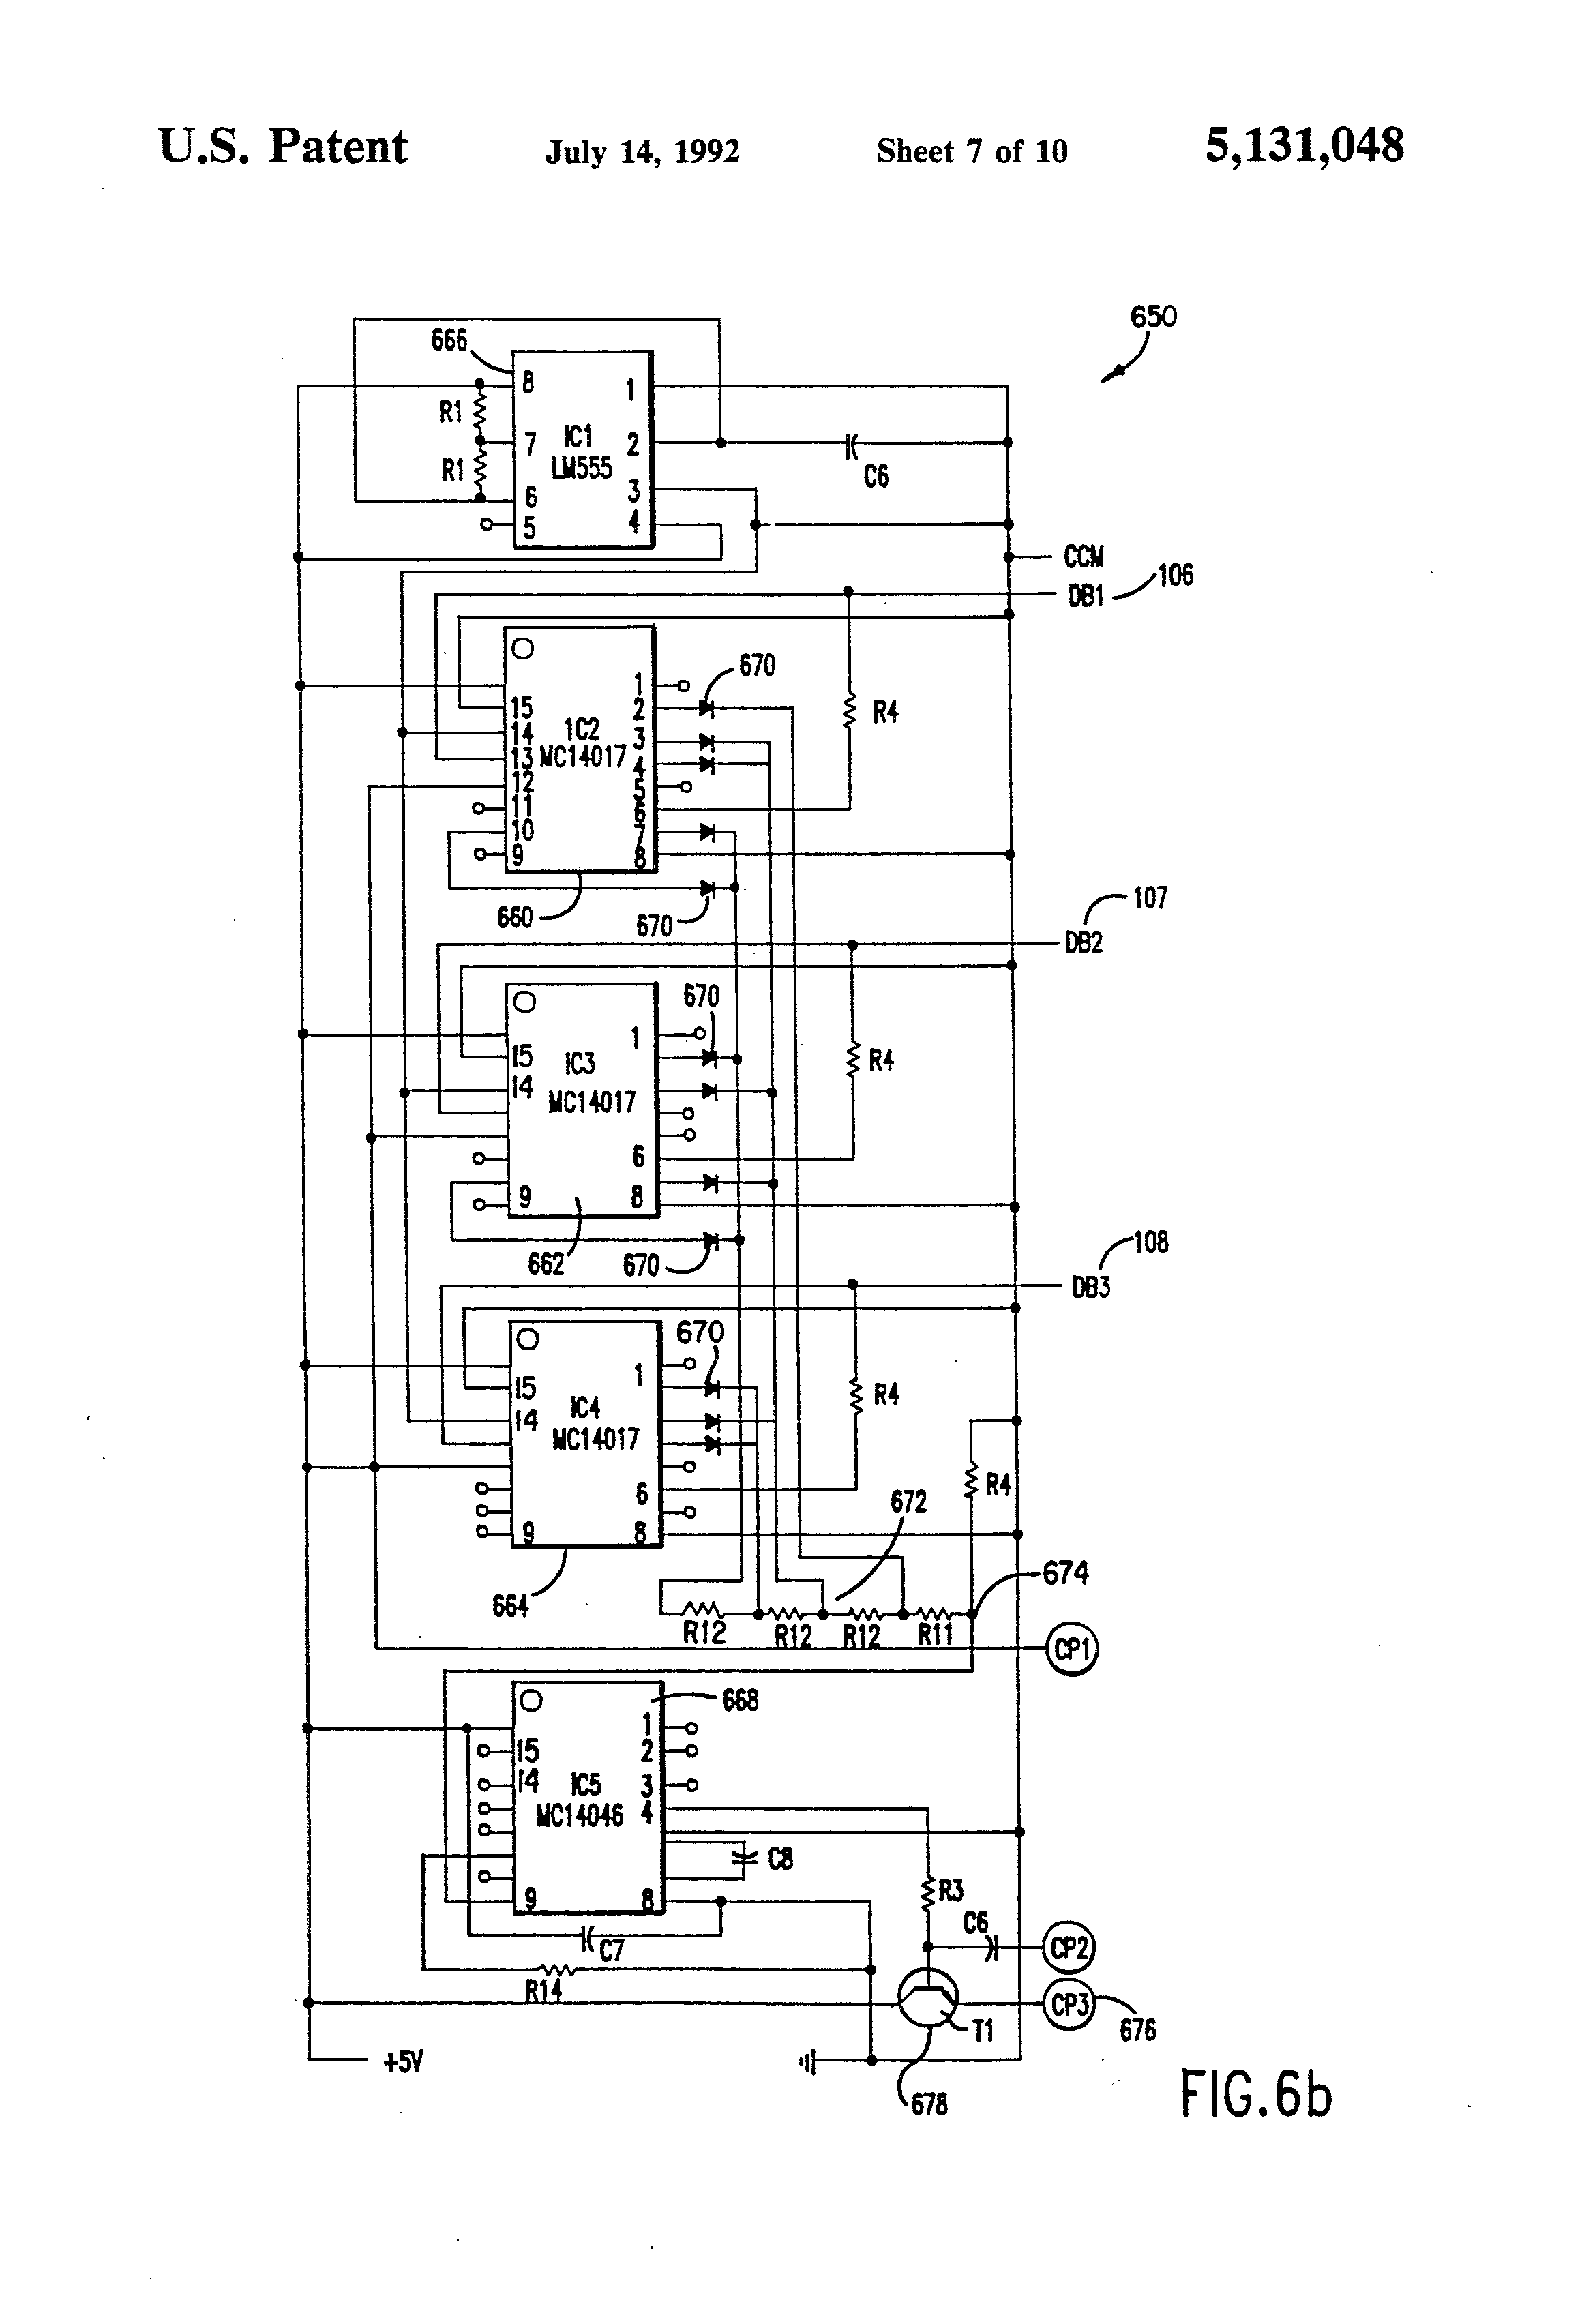 AIPHONE WIRING DIAGRAM - Auto Electrical Wiring Diagram on apc wiring diagrams, tektone wiring diagrams, viking wiring diagrams, detex wiring diagrams, atlas sound wiring diagrams, lutron wiring diagrams, westinghouse wiring diagrams, liftmaster wiring diagrams, audiovox wiring diagrams, intermec wiring diagrams, honeywell wiring diagrams, lg wiring diagrams, sony wiring diagrams, russound wiring diagrams, mitsubishi wiring diagrams, corby wiring diagrams, kantech wiring diagrams, ge wiring diagrams, eaton wiring diagrams, dvr wiring diagrams,